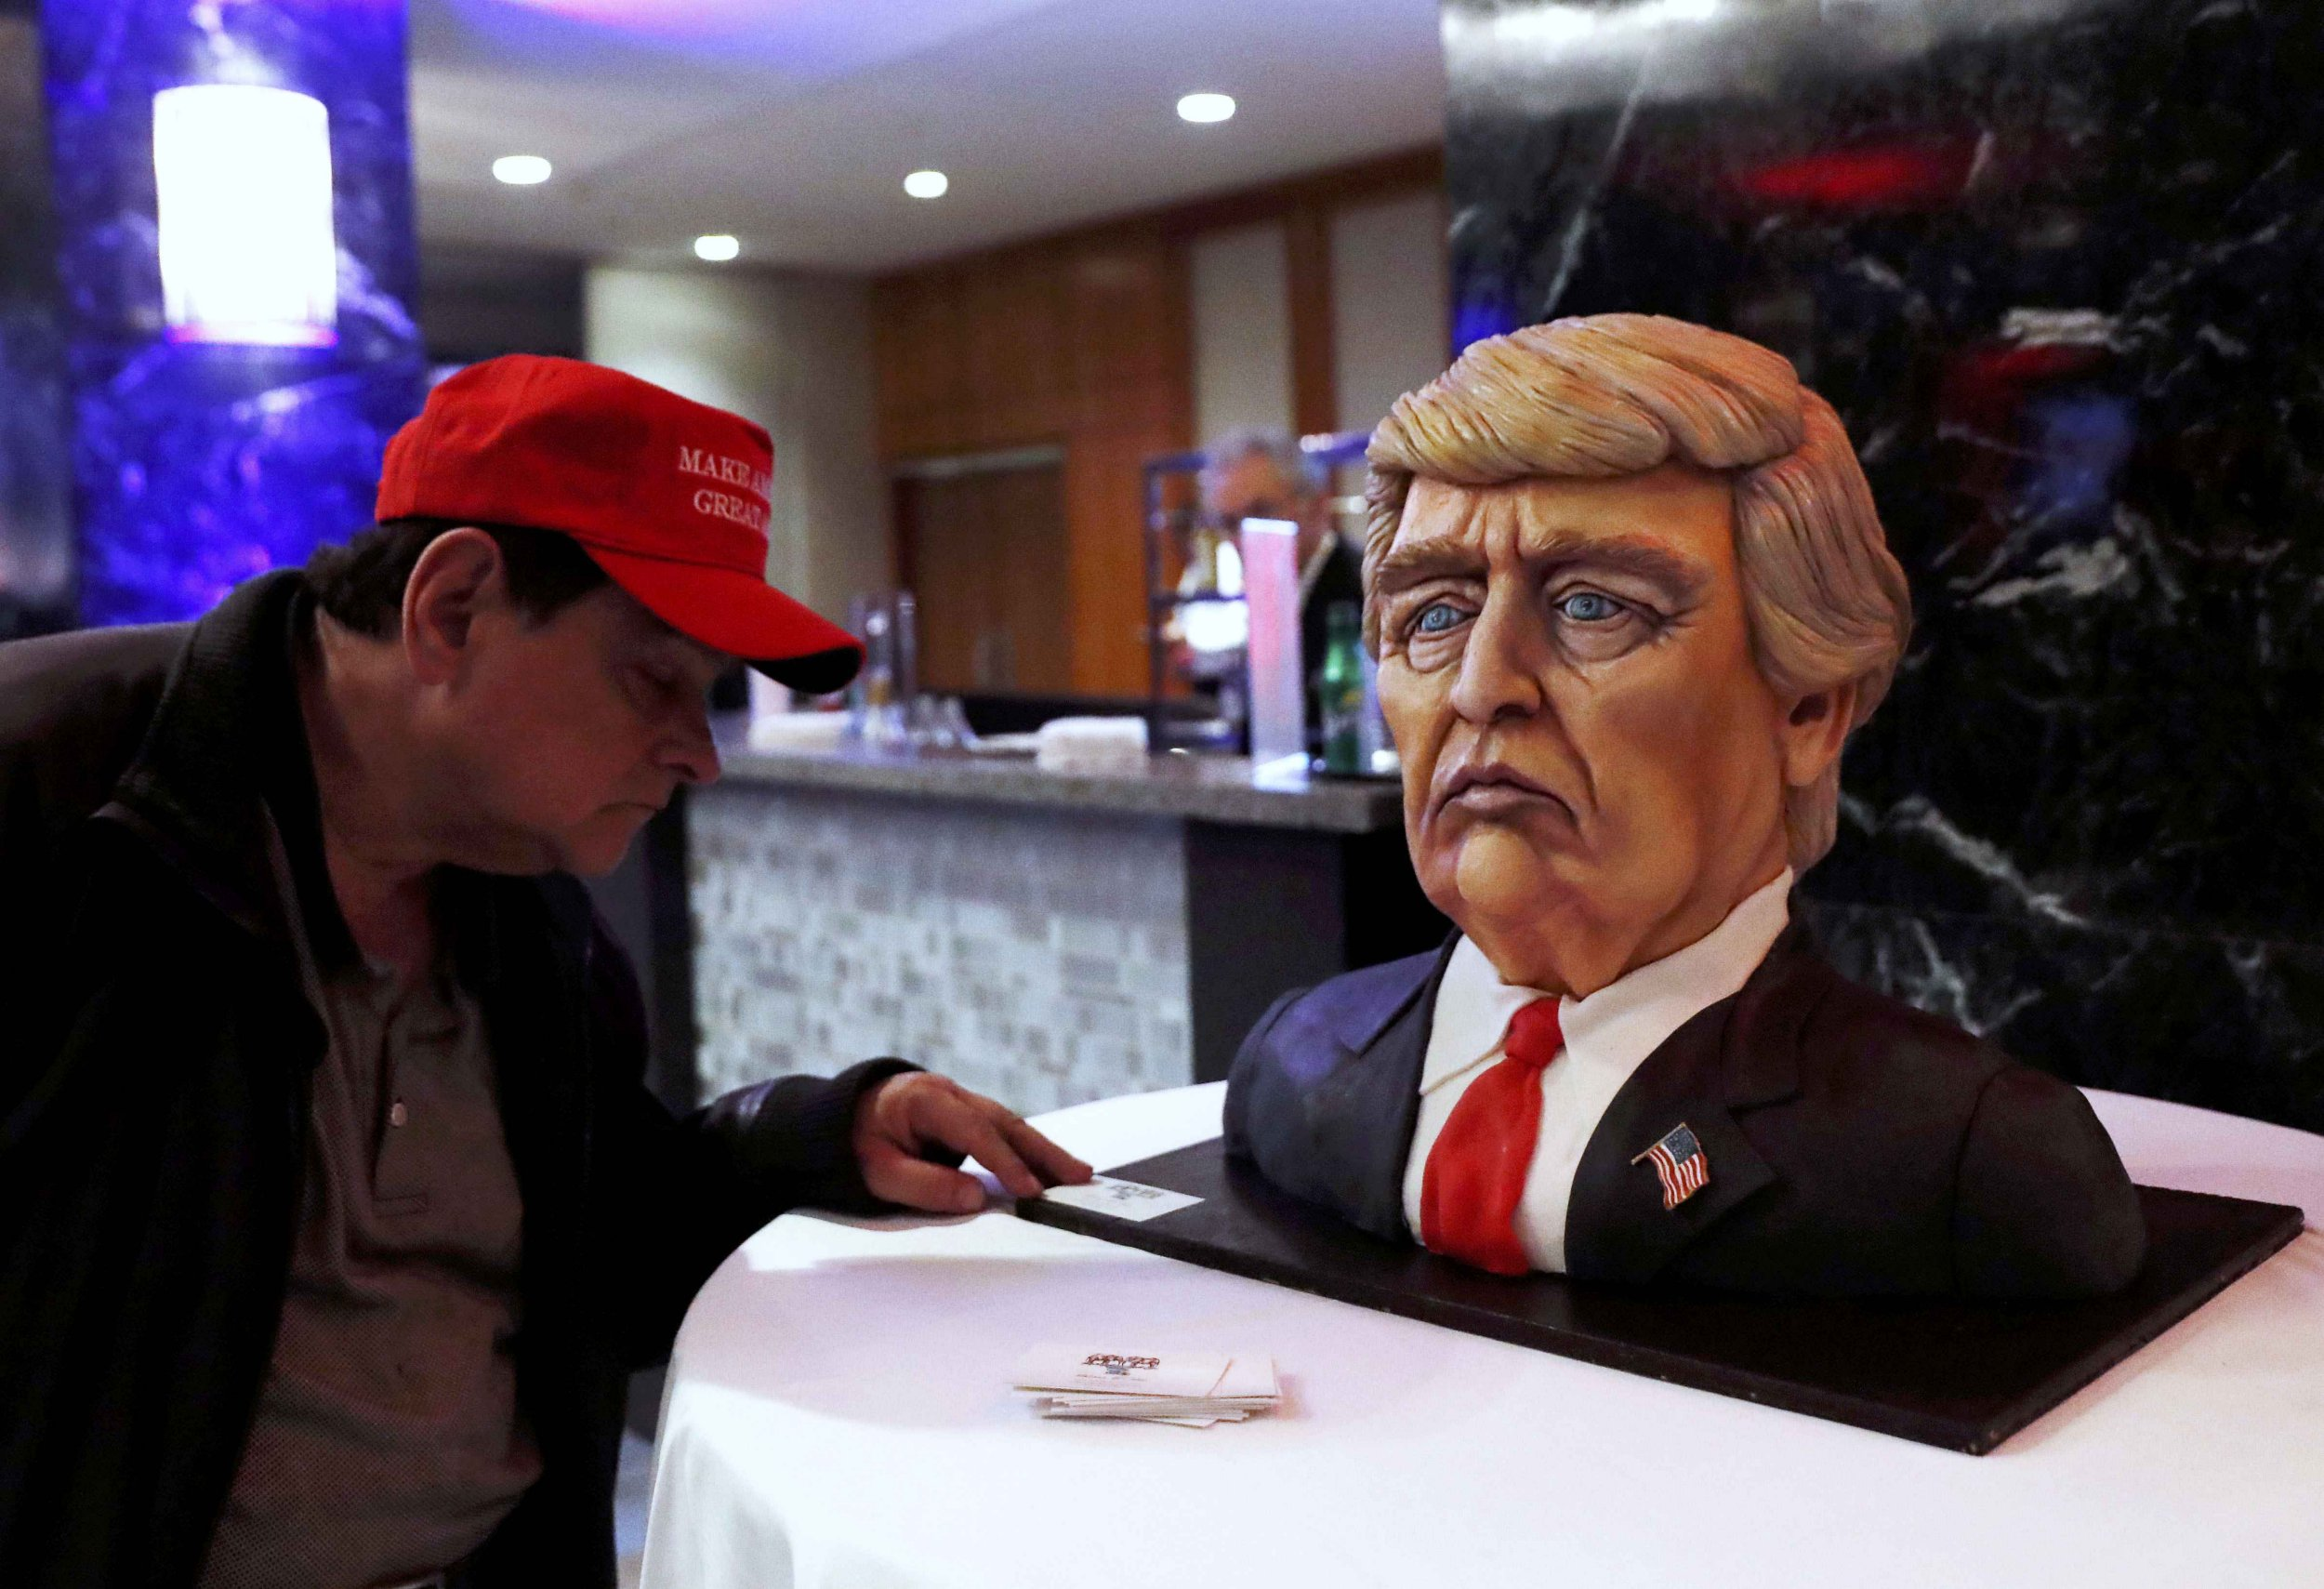 A man checks out a Trump cake ahead of the rally for Republican U.S. presidential nominee Donald Trump in New York City, New York, U.S. November 8, 2016. REUTERS/Andrew Kelly